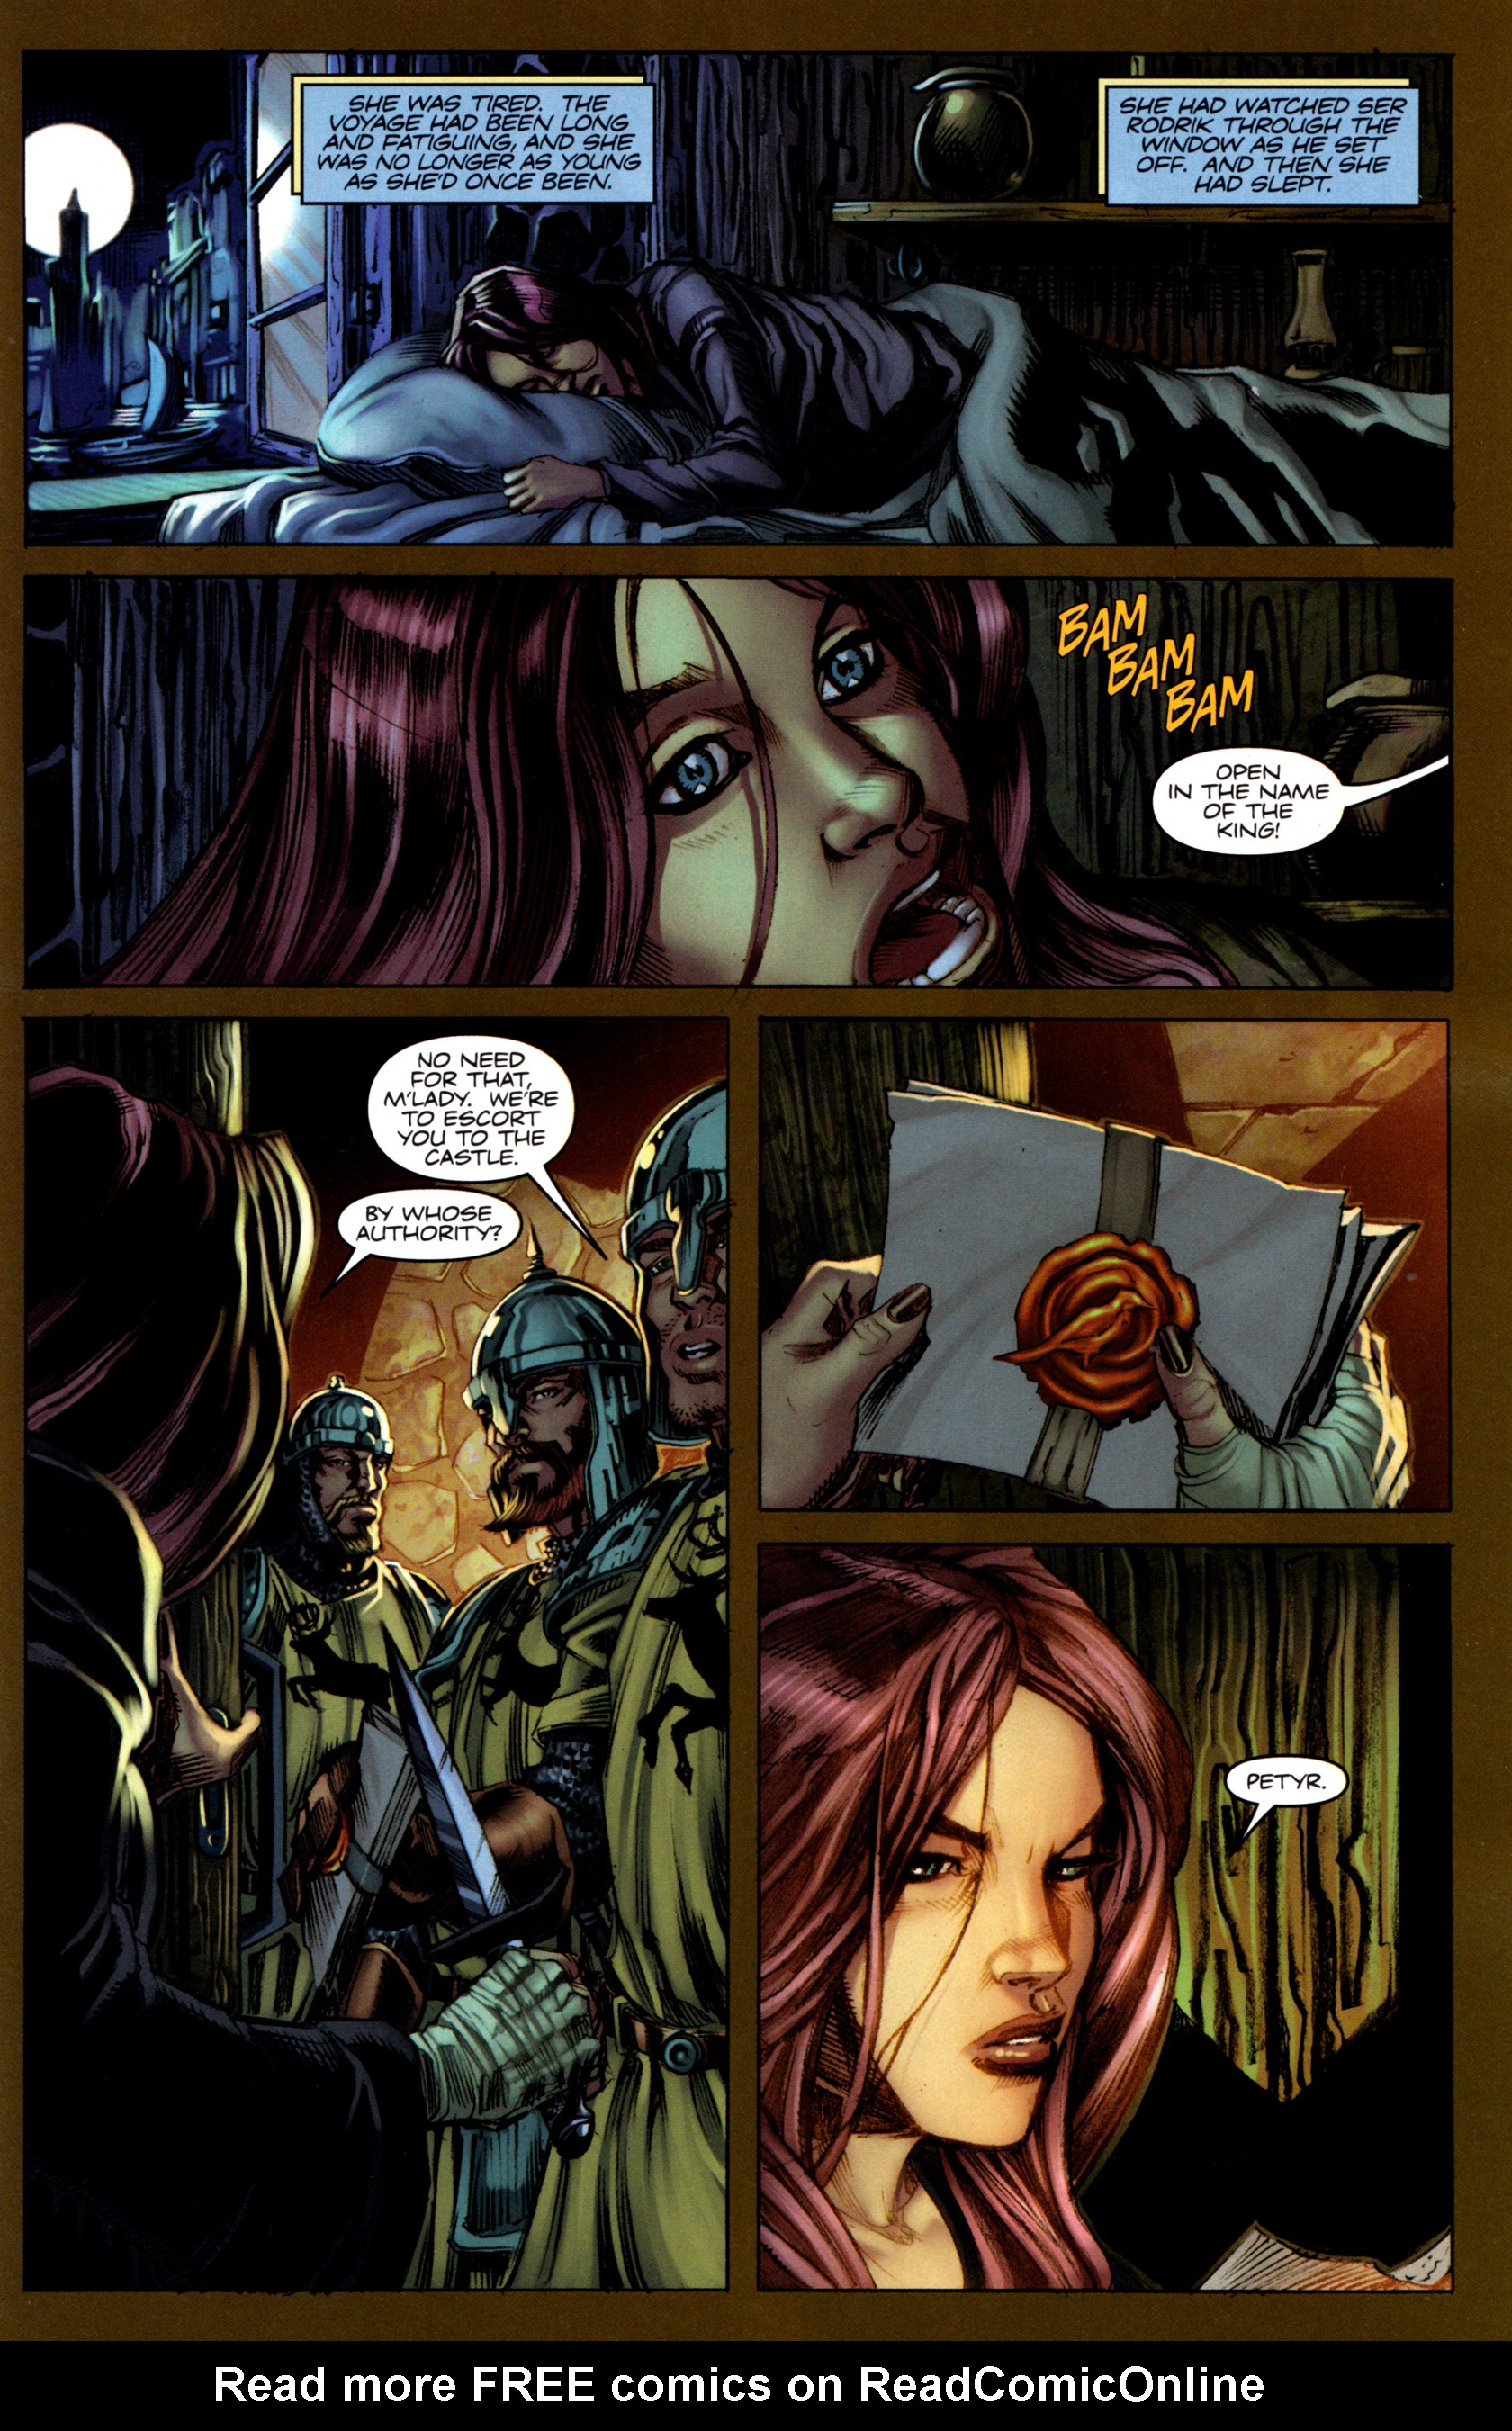 Read online A Game Of Thrones comic -  Issue #5 - 15